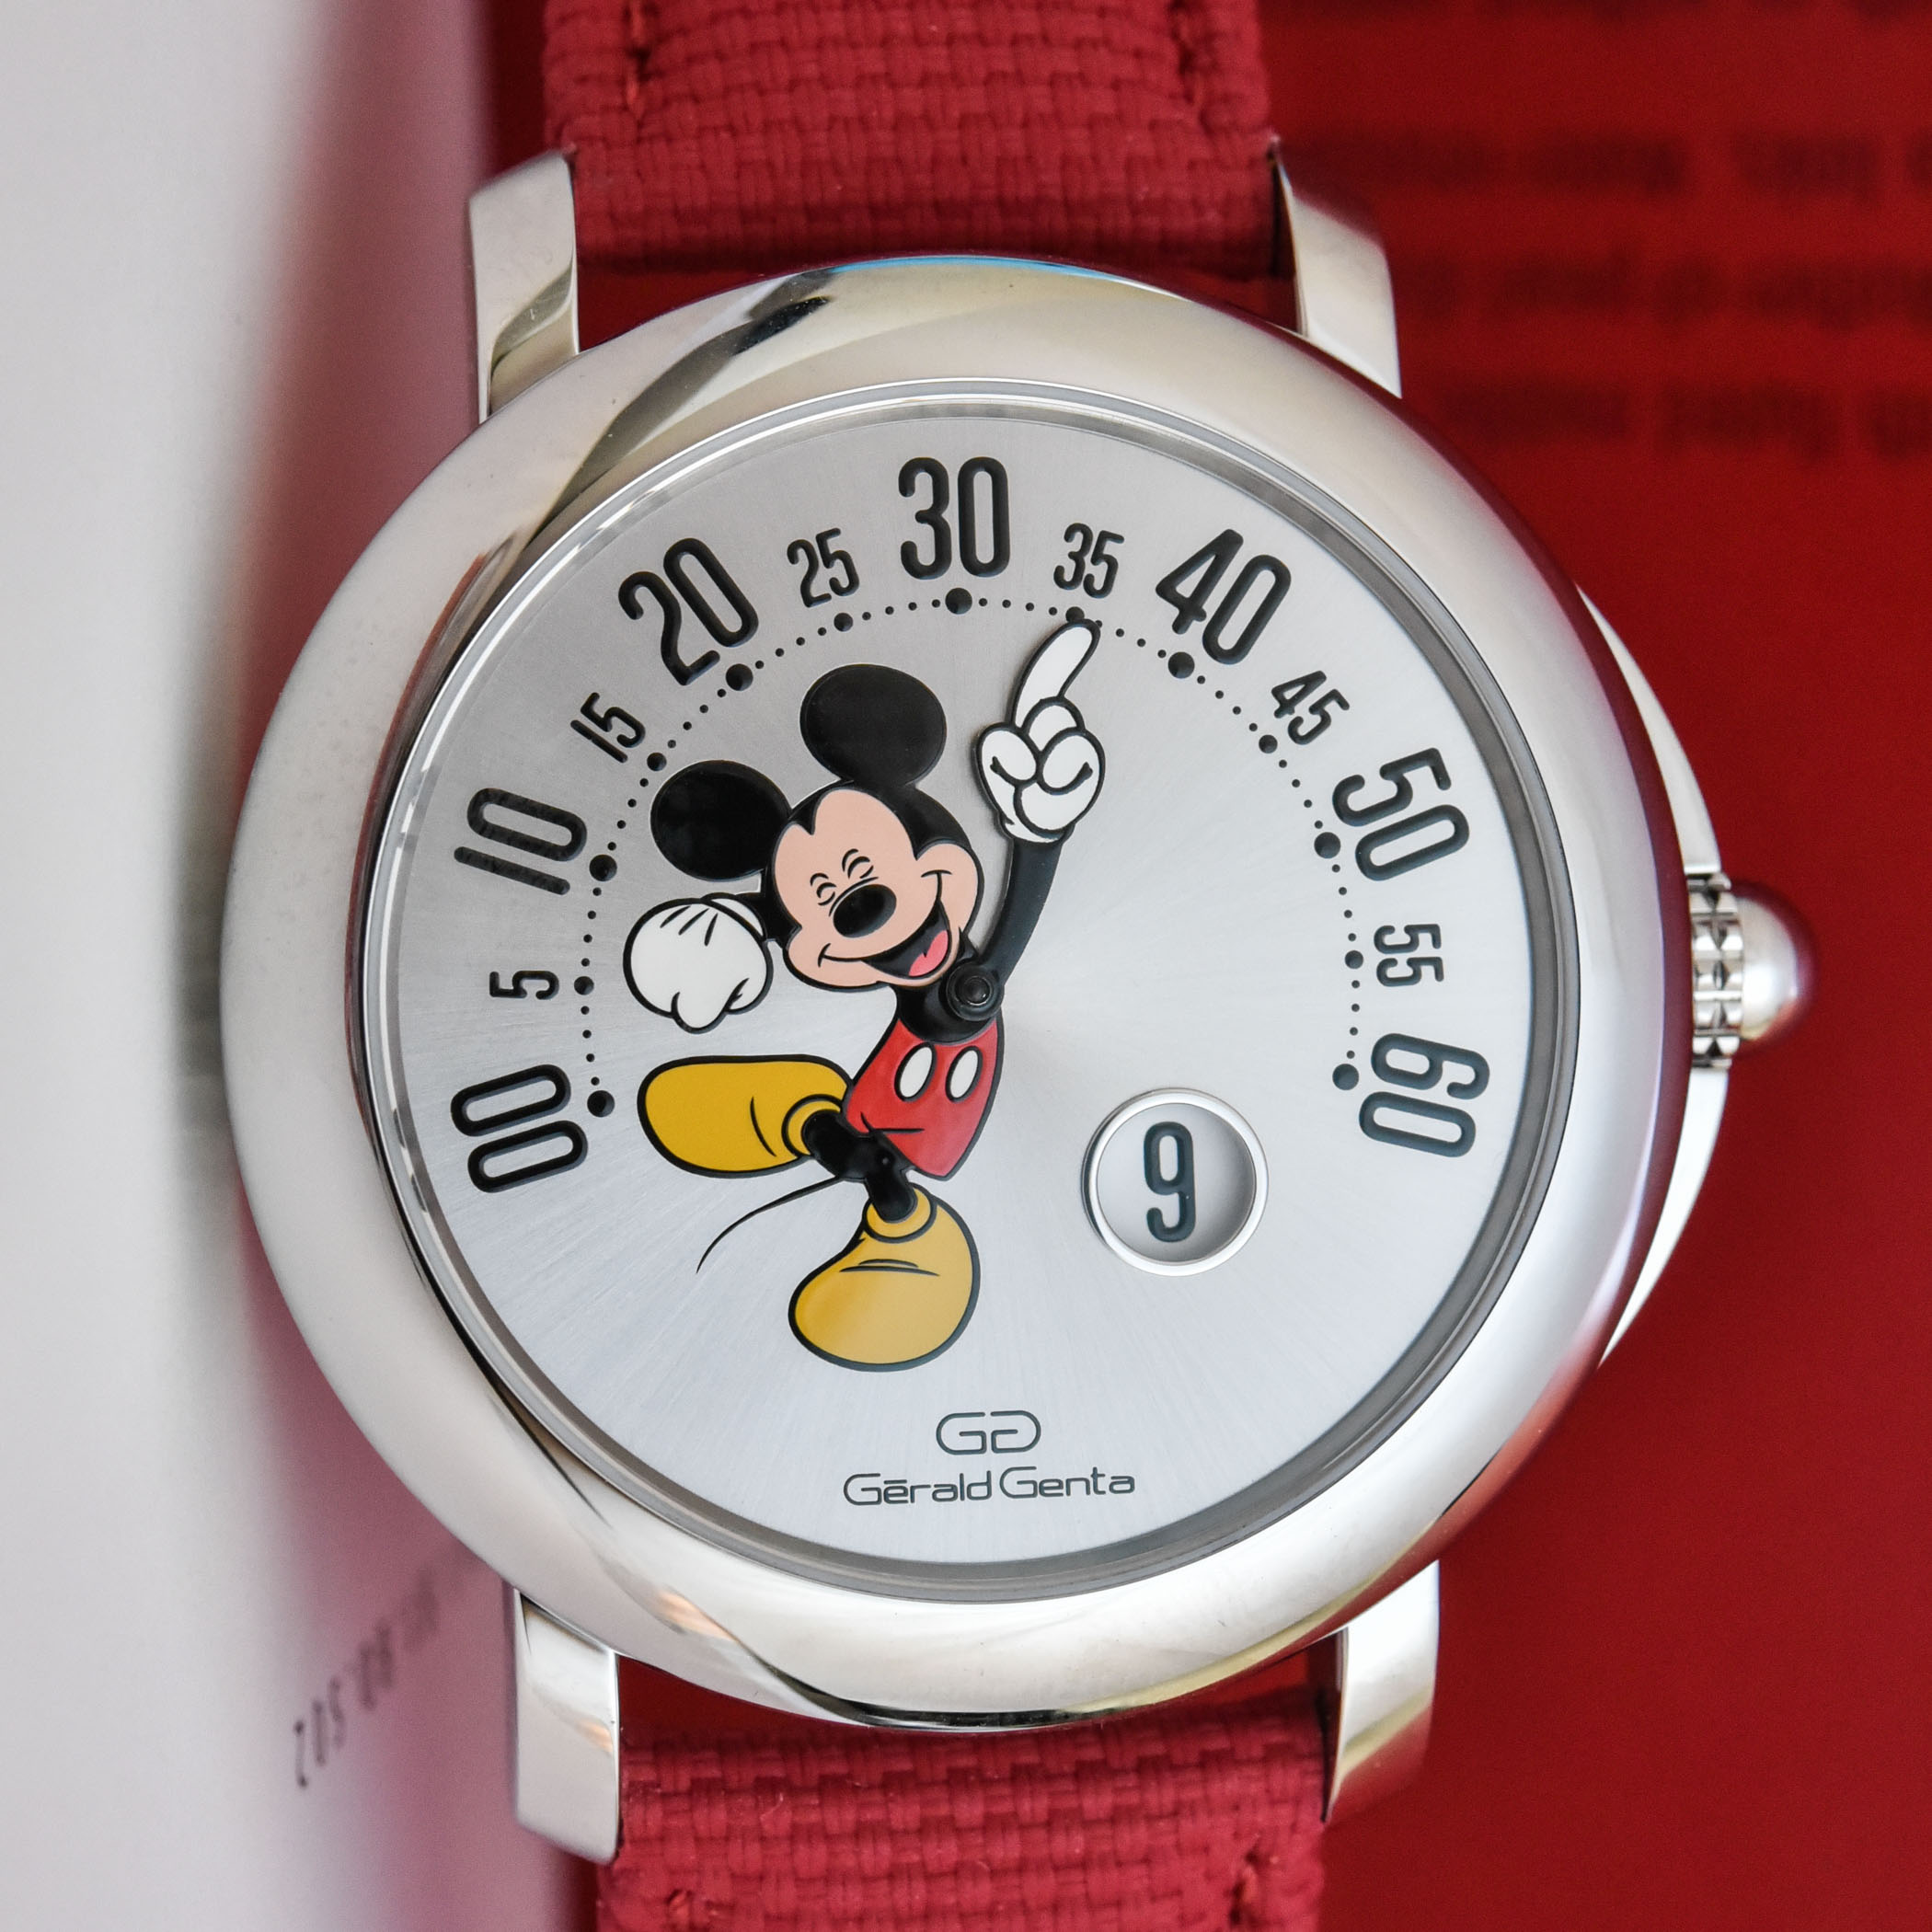 2021-Gerald-Genta-Arena-Retrograde-with-Smiling-Disney-Mickey-Mouse-Limited-Edition-103613-review-3.jpg